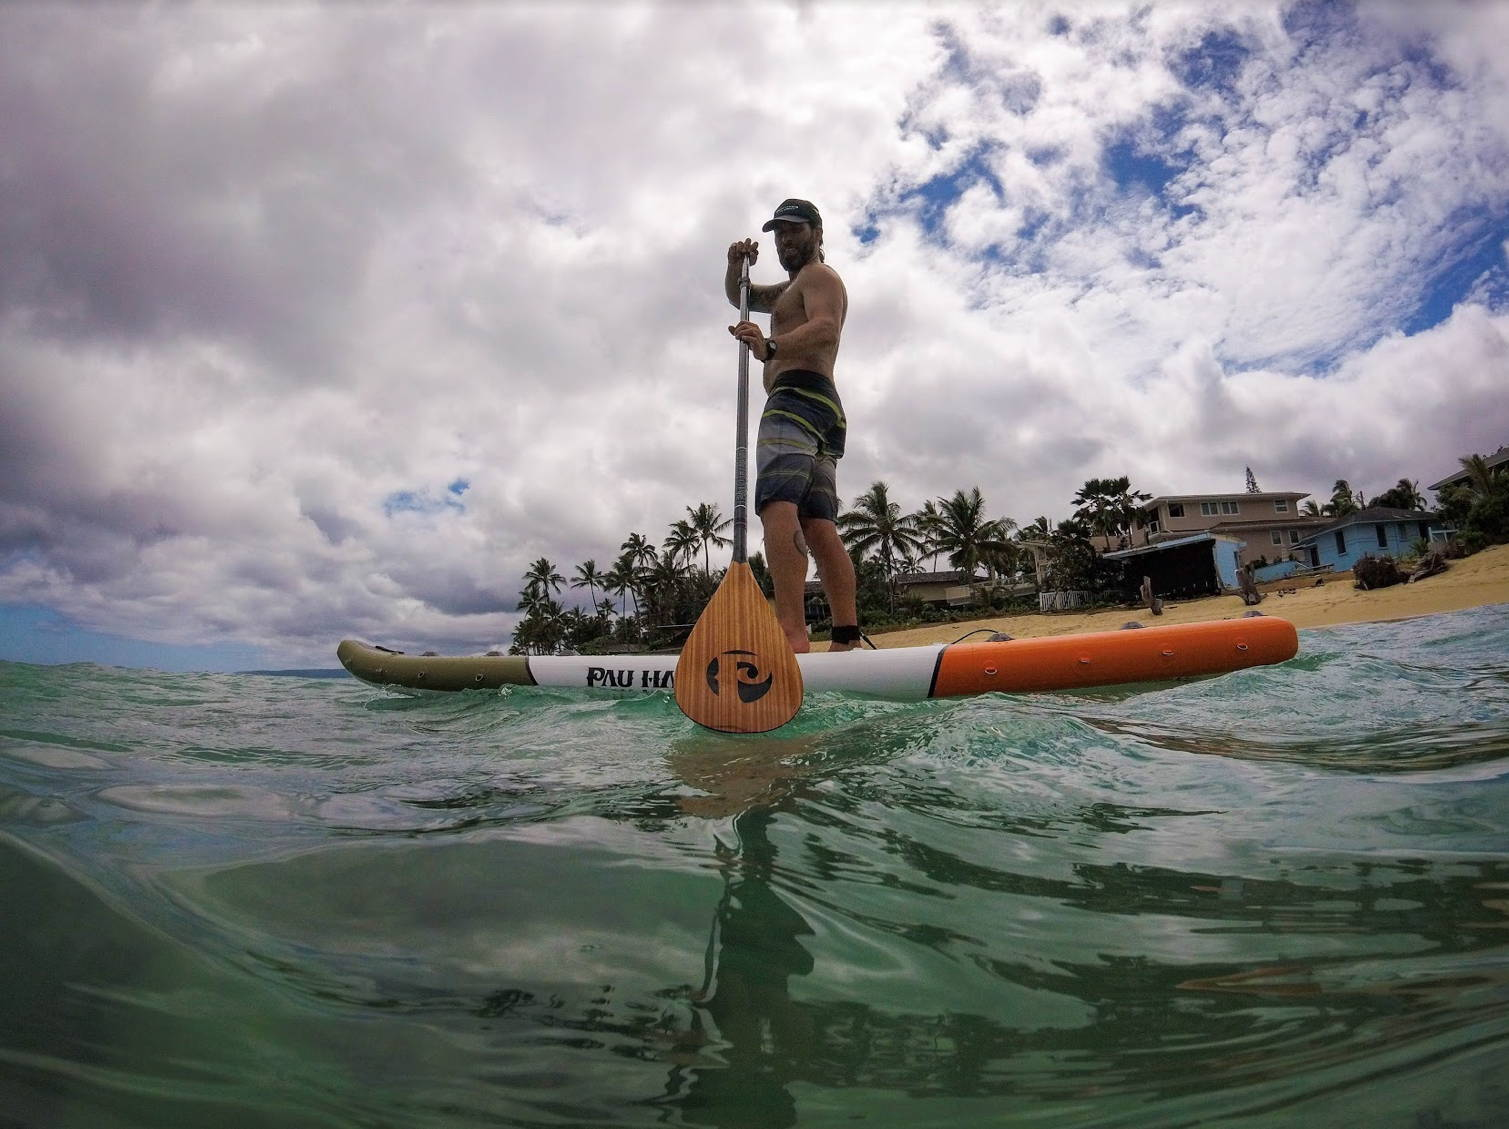 Paddling the orange Endurance Air